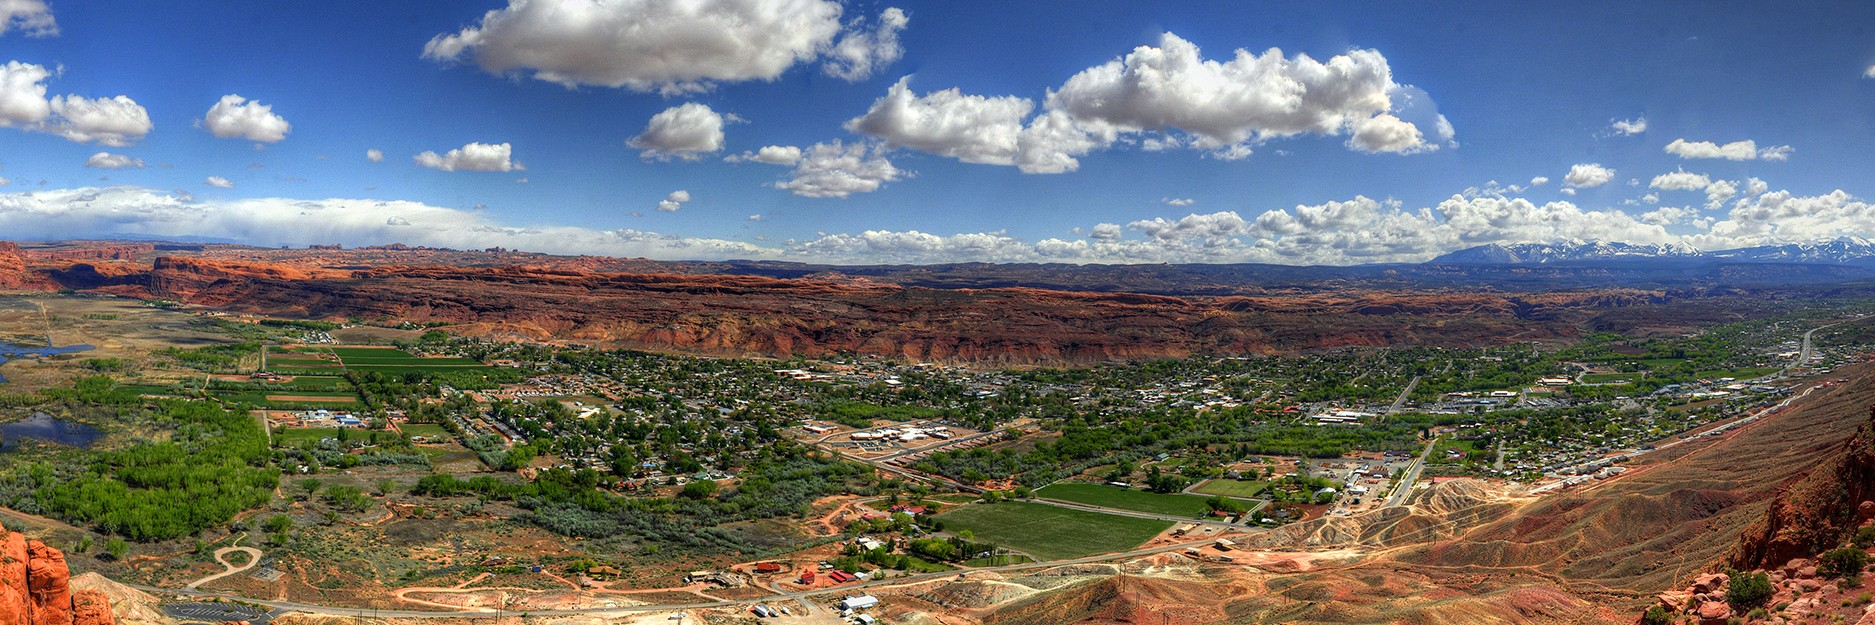 A view of the town of Moab, Utah from The Moab Rim Trail